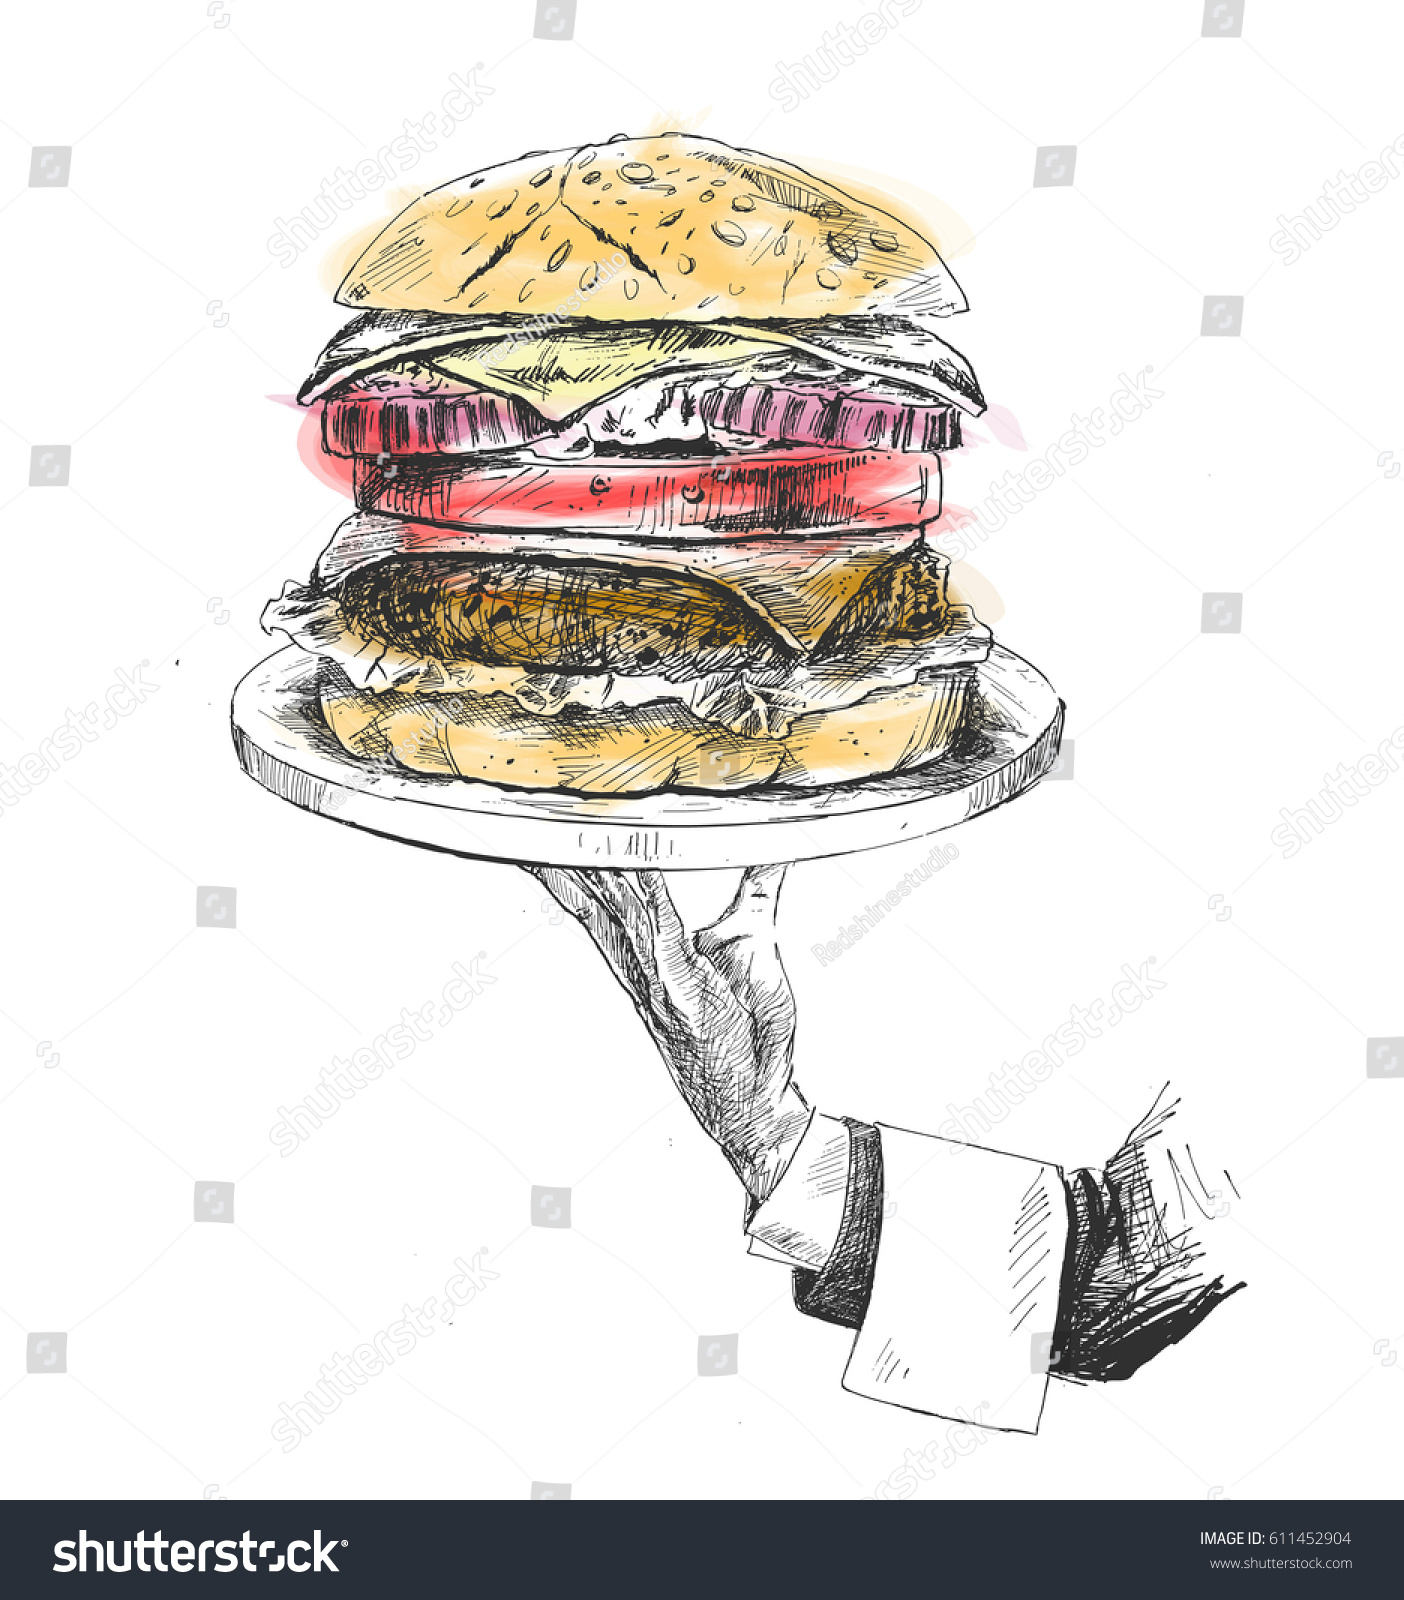 Human hand holding plate of hungry burger concept hand drawn sketch vector illustration